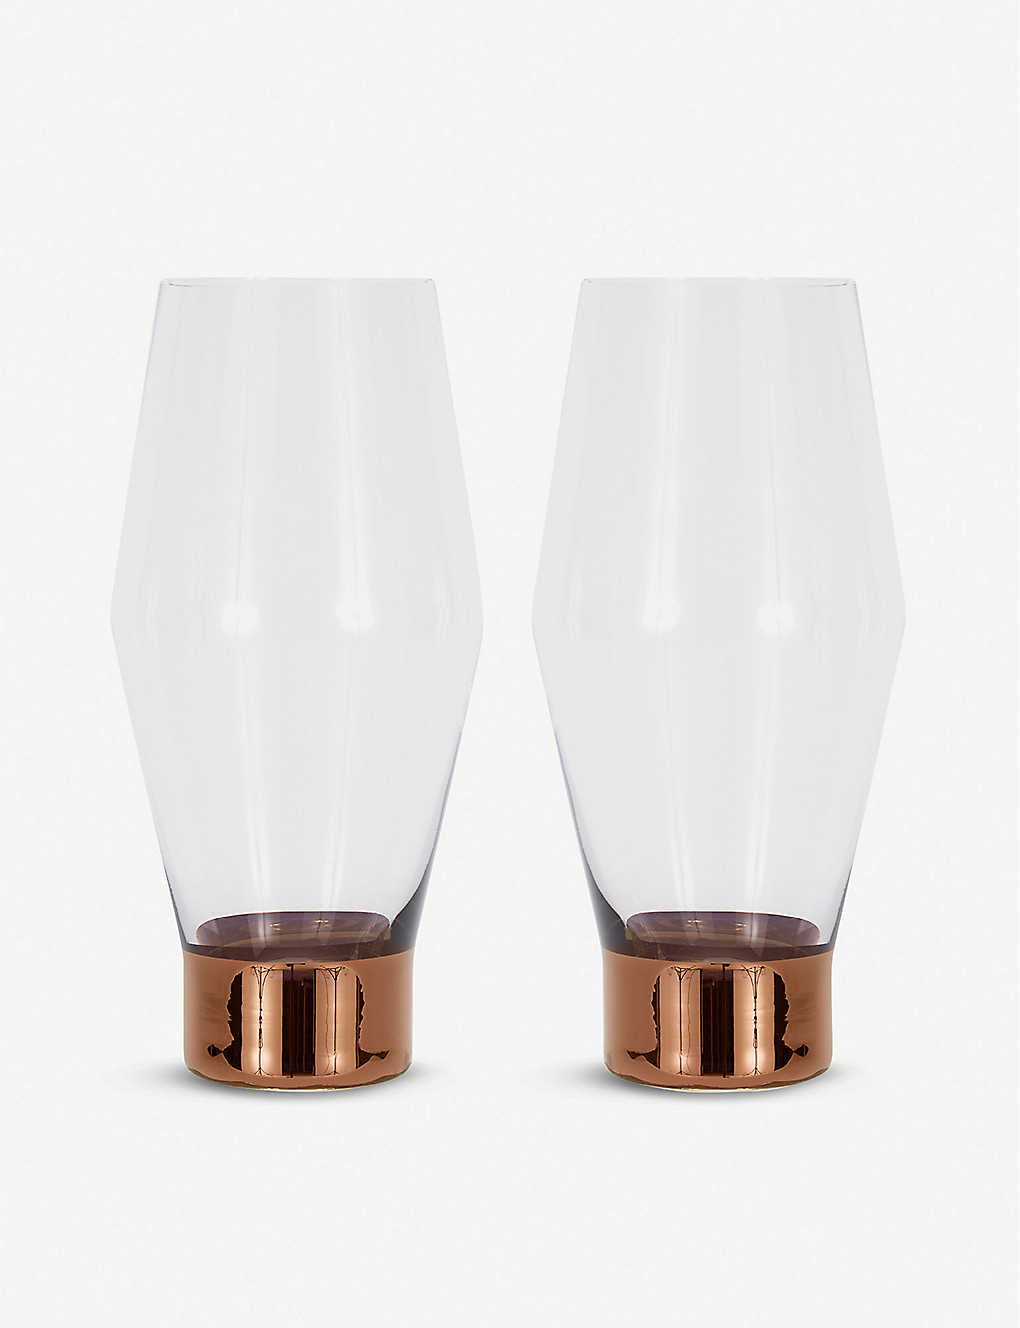 TOM DIXON: Tank beer glasses